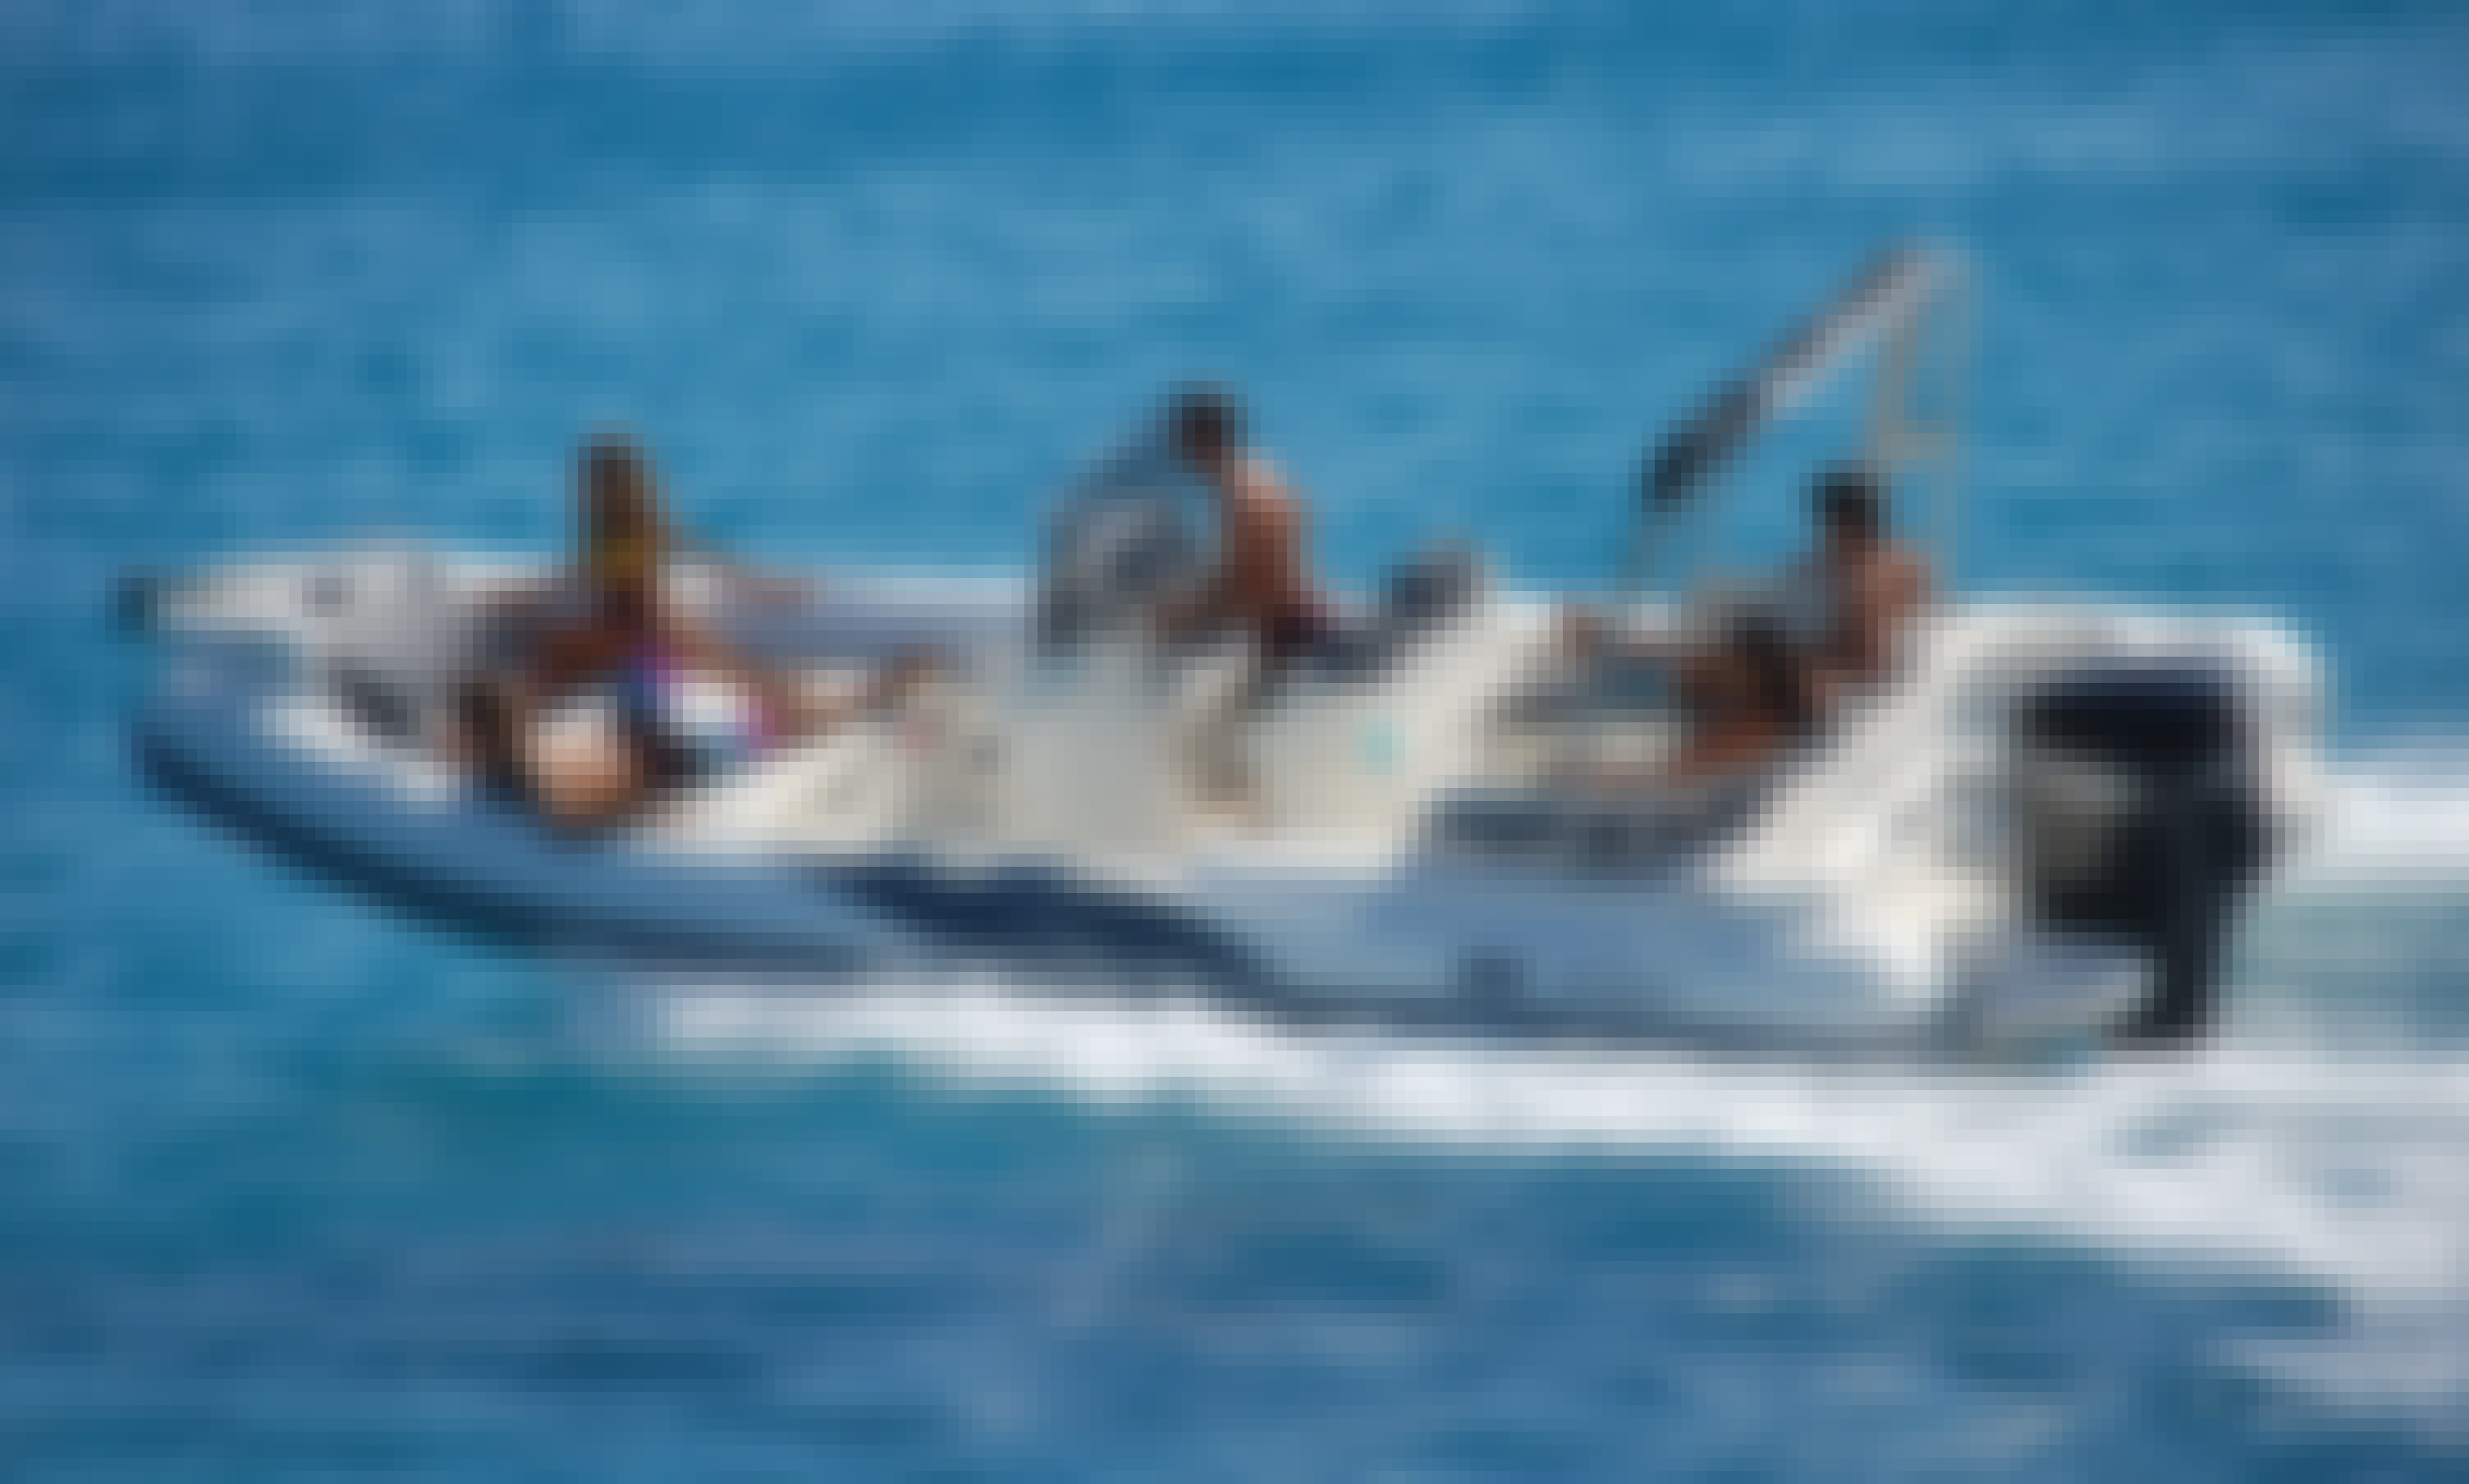 BSC 780 CLASSIC RIB Boat for Rent in Notteri